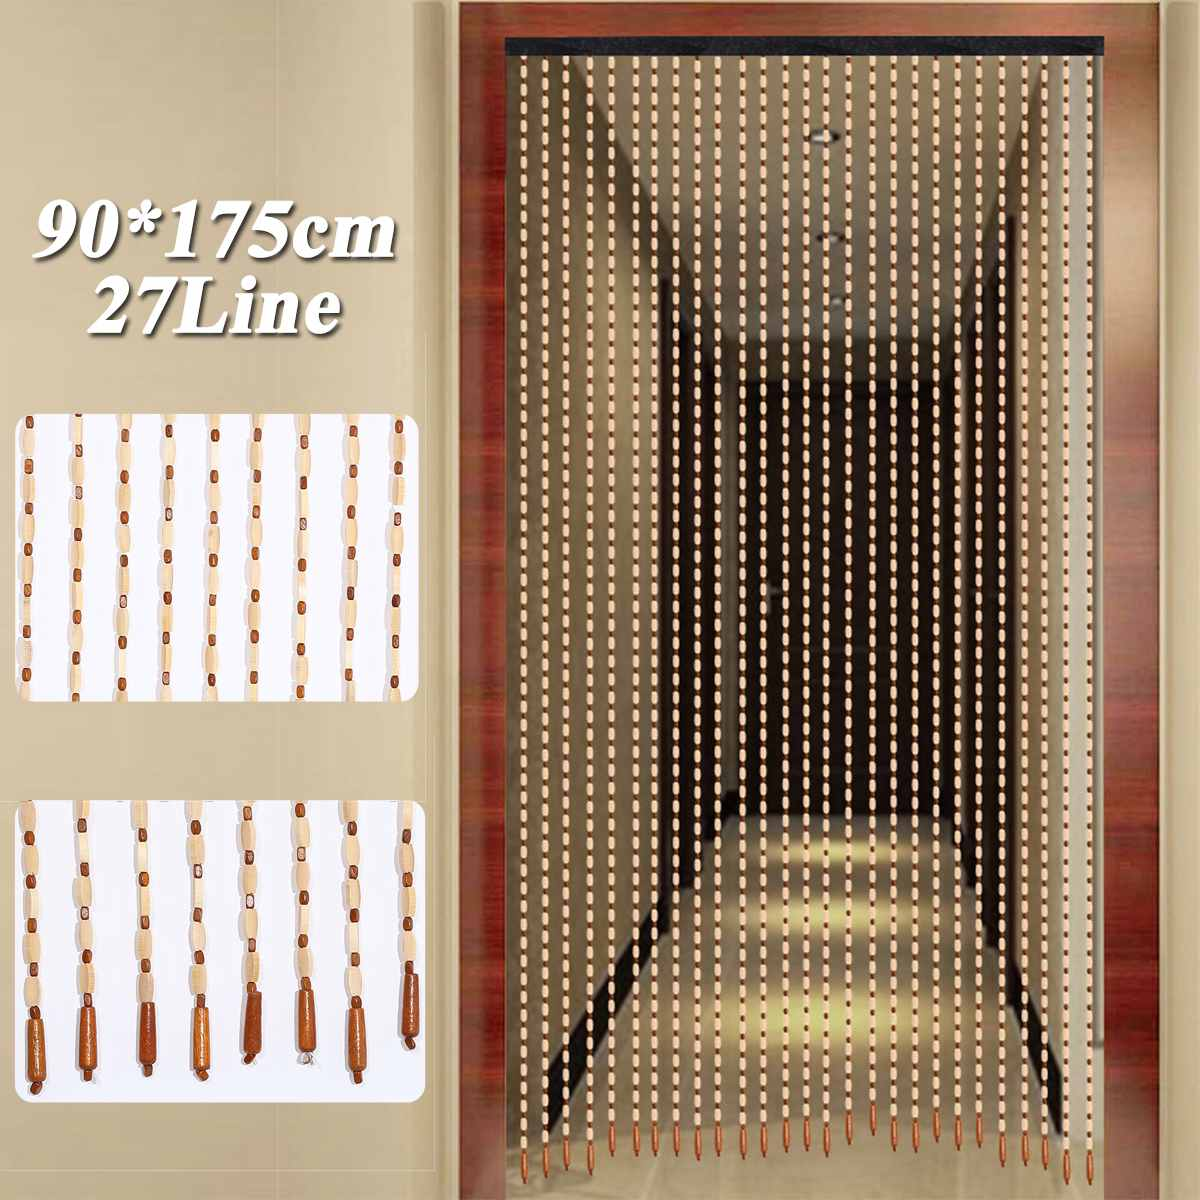 90x175cm 27 Line Wooden Beads Curtain Fly Screen Handmade String Beans Blinds For Door Entrance Living Room Window Gate Divider